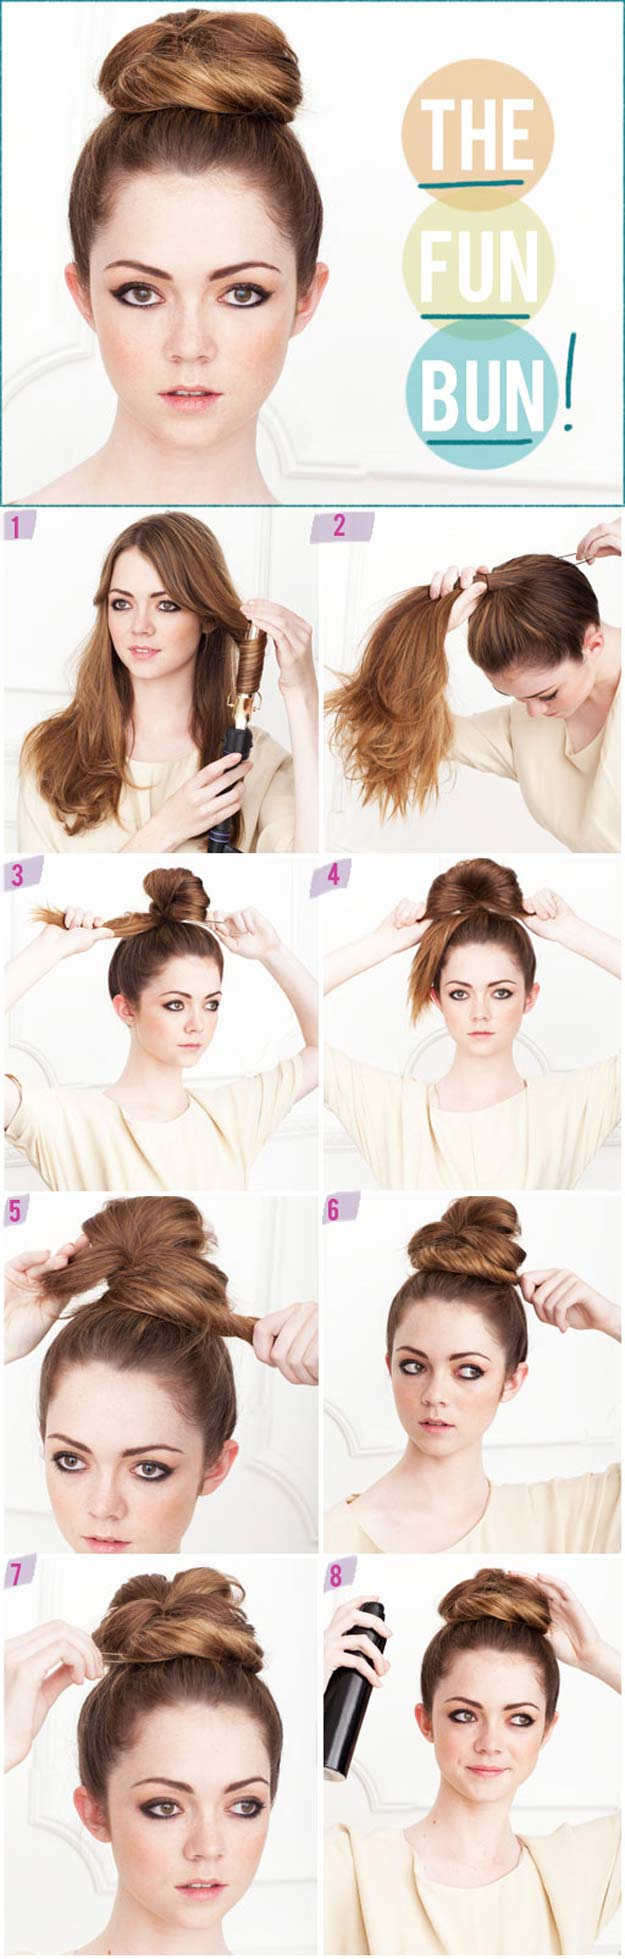 Best Hairstyles for Long Hair - Fun Bun- Step by Step Tutorials for Easy Curls, Updo, Half Up, Braids and Lazy Girl Looks. Prom Ideas, Special Occasion Hair and Braiding Instructions for Teens, Teenagers and Adults, Women and Girls http://diyprojectsforteens.com/best-hairstyles-long-hair